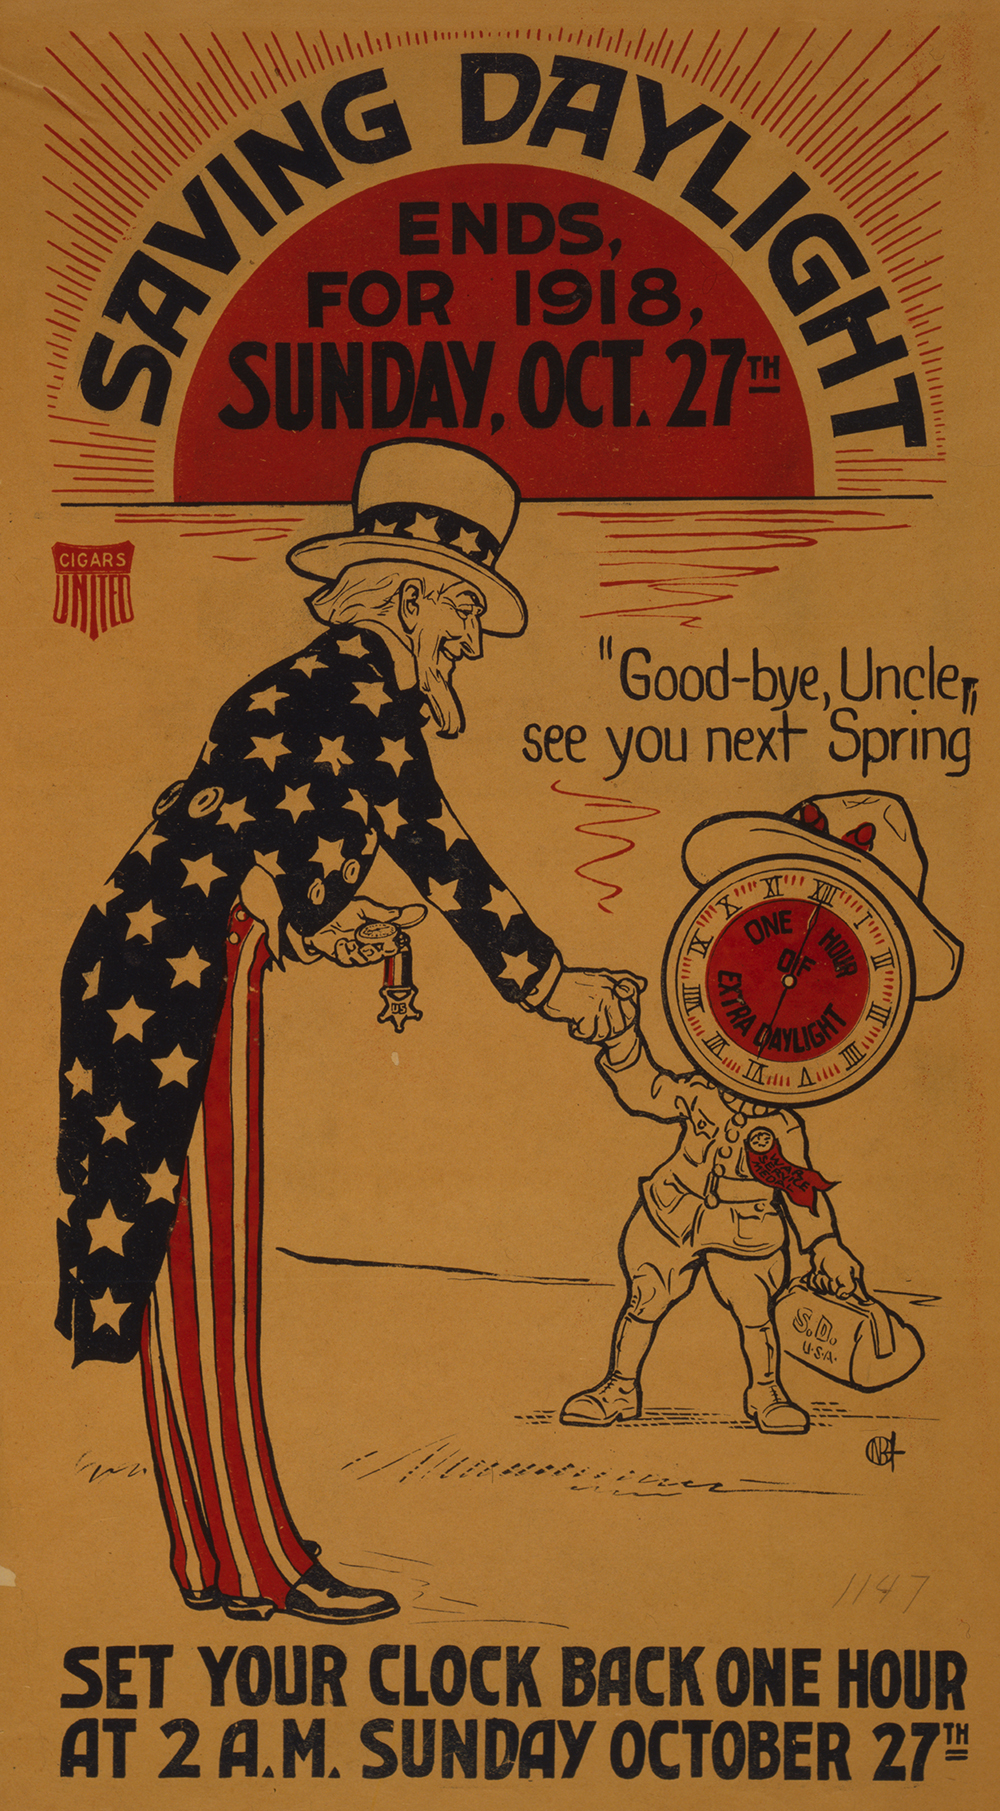 Saving daylight ends, 1918. Library of Congress, Prints and Photographs Division.